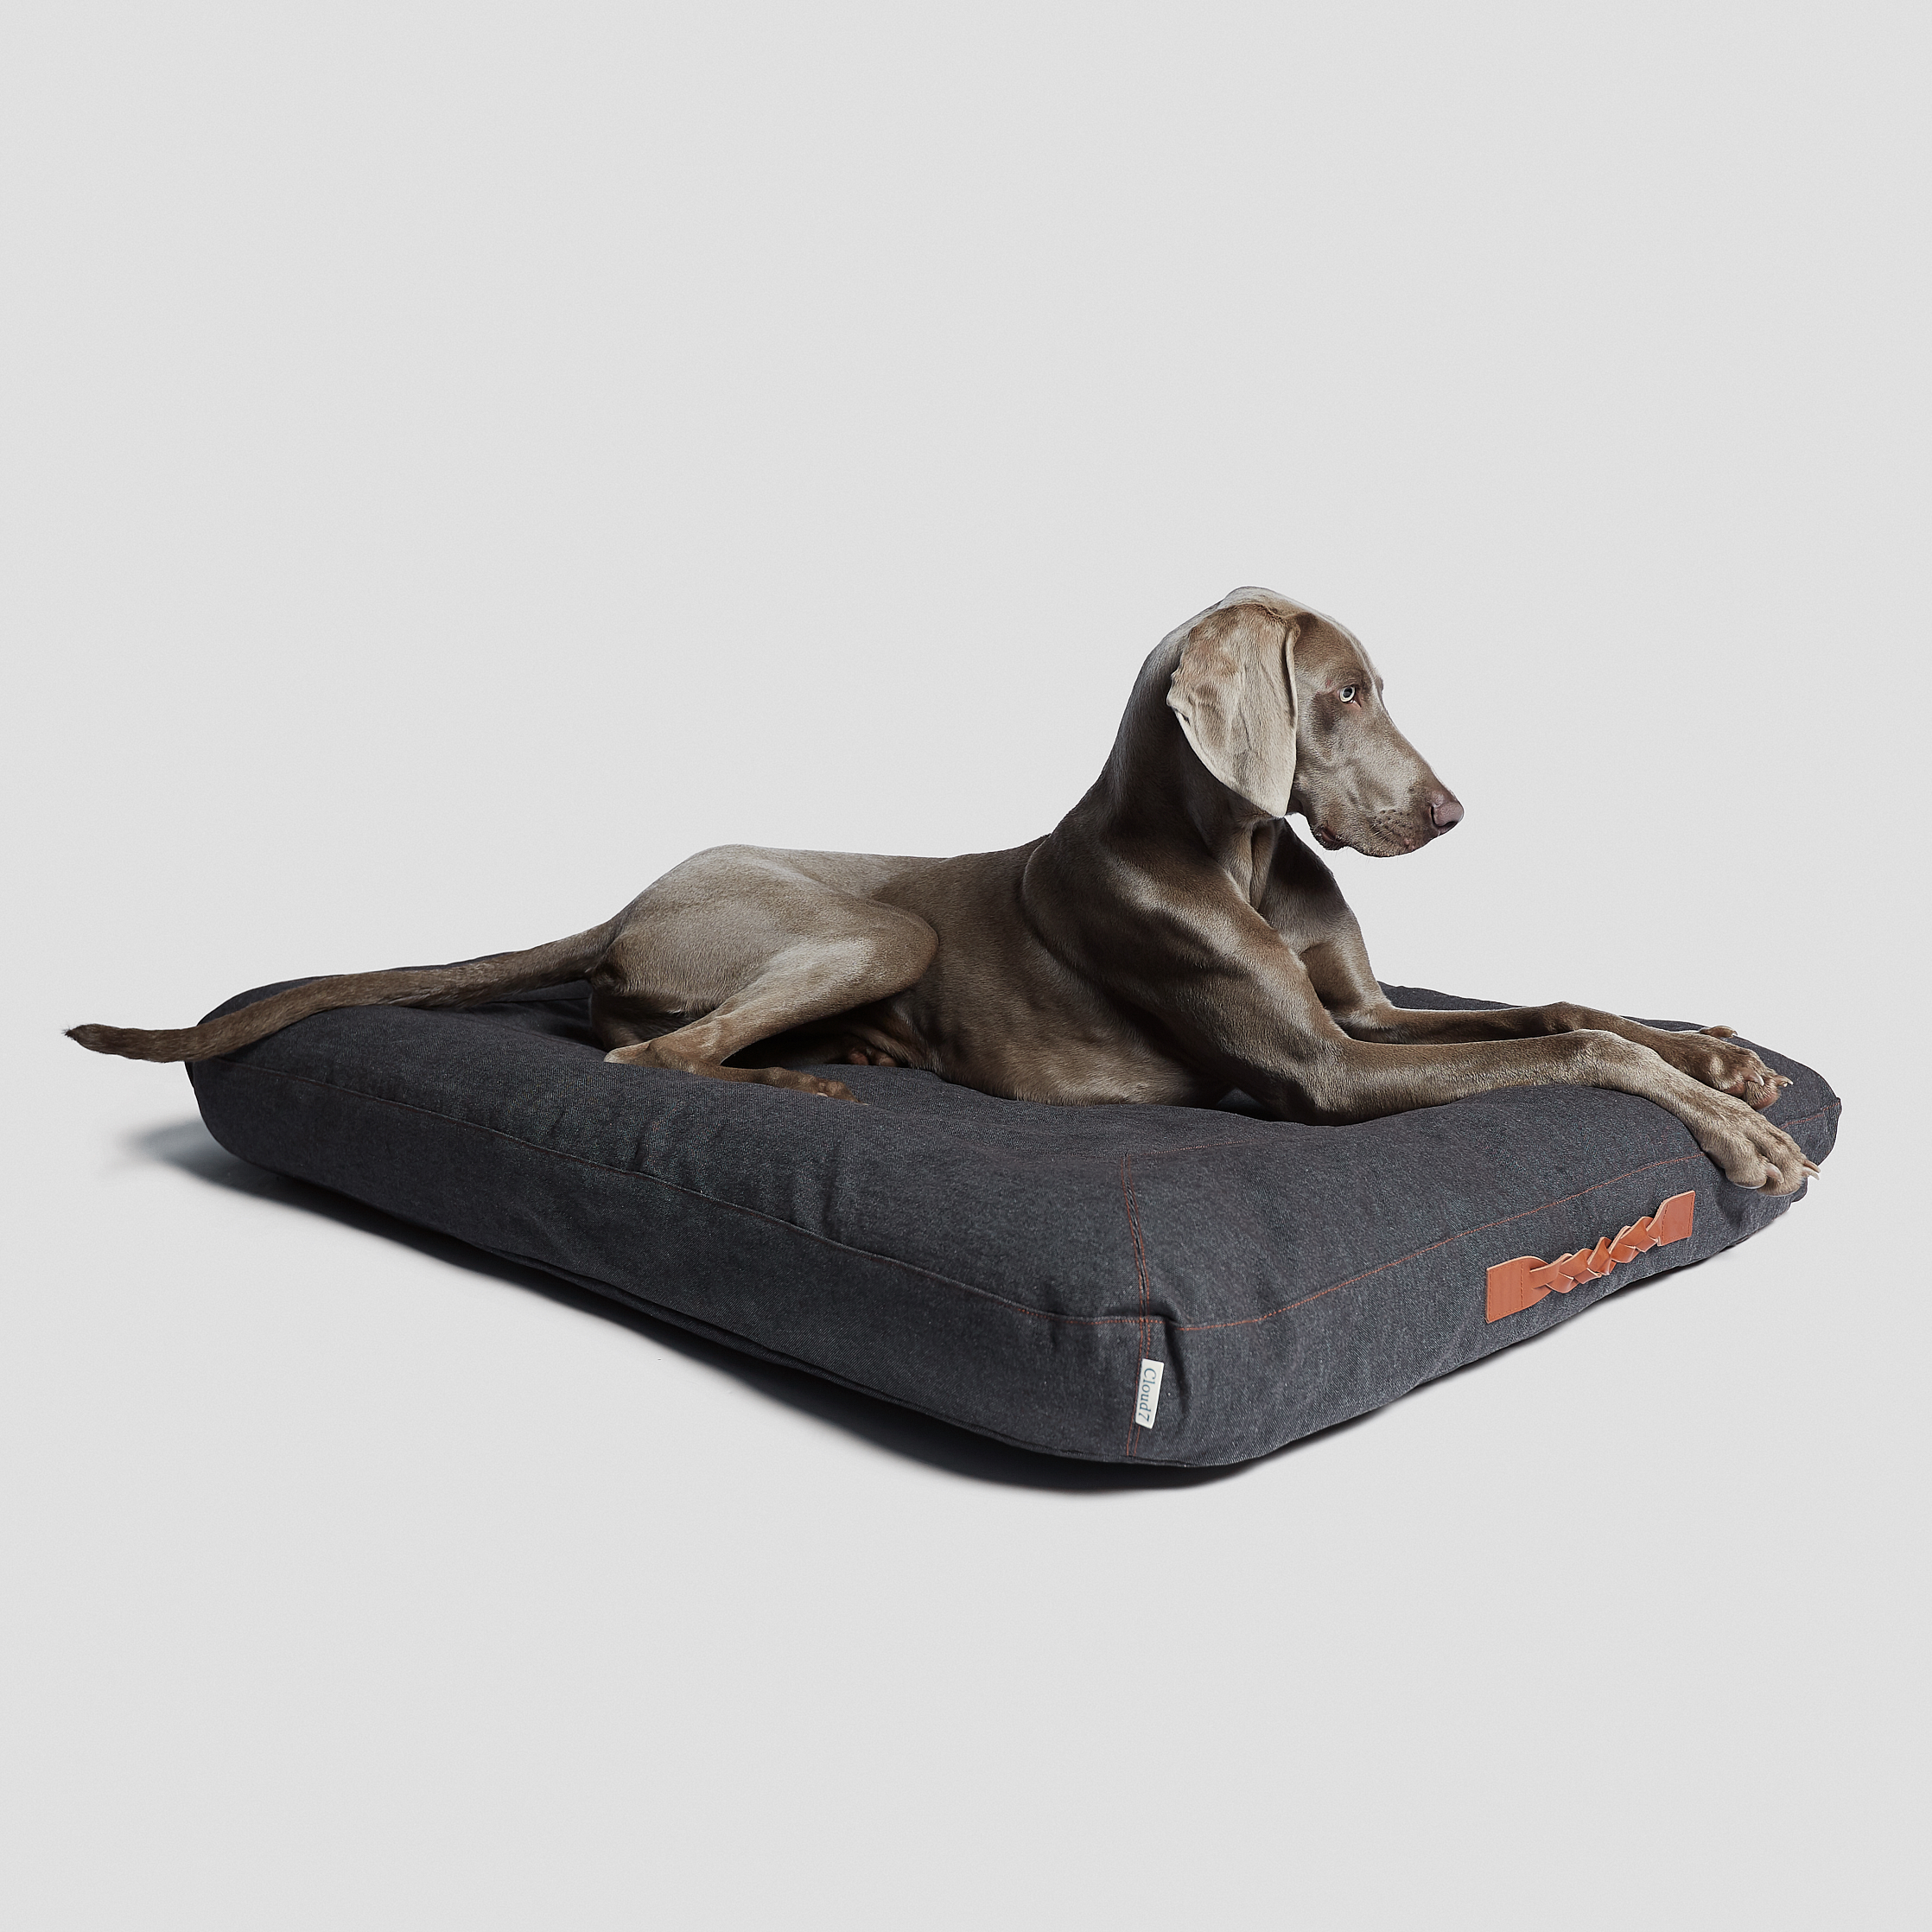 Cloud7-Dog-Bed-Dream-Heather-Brown-Dog-1